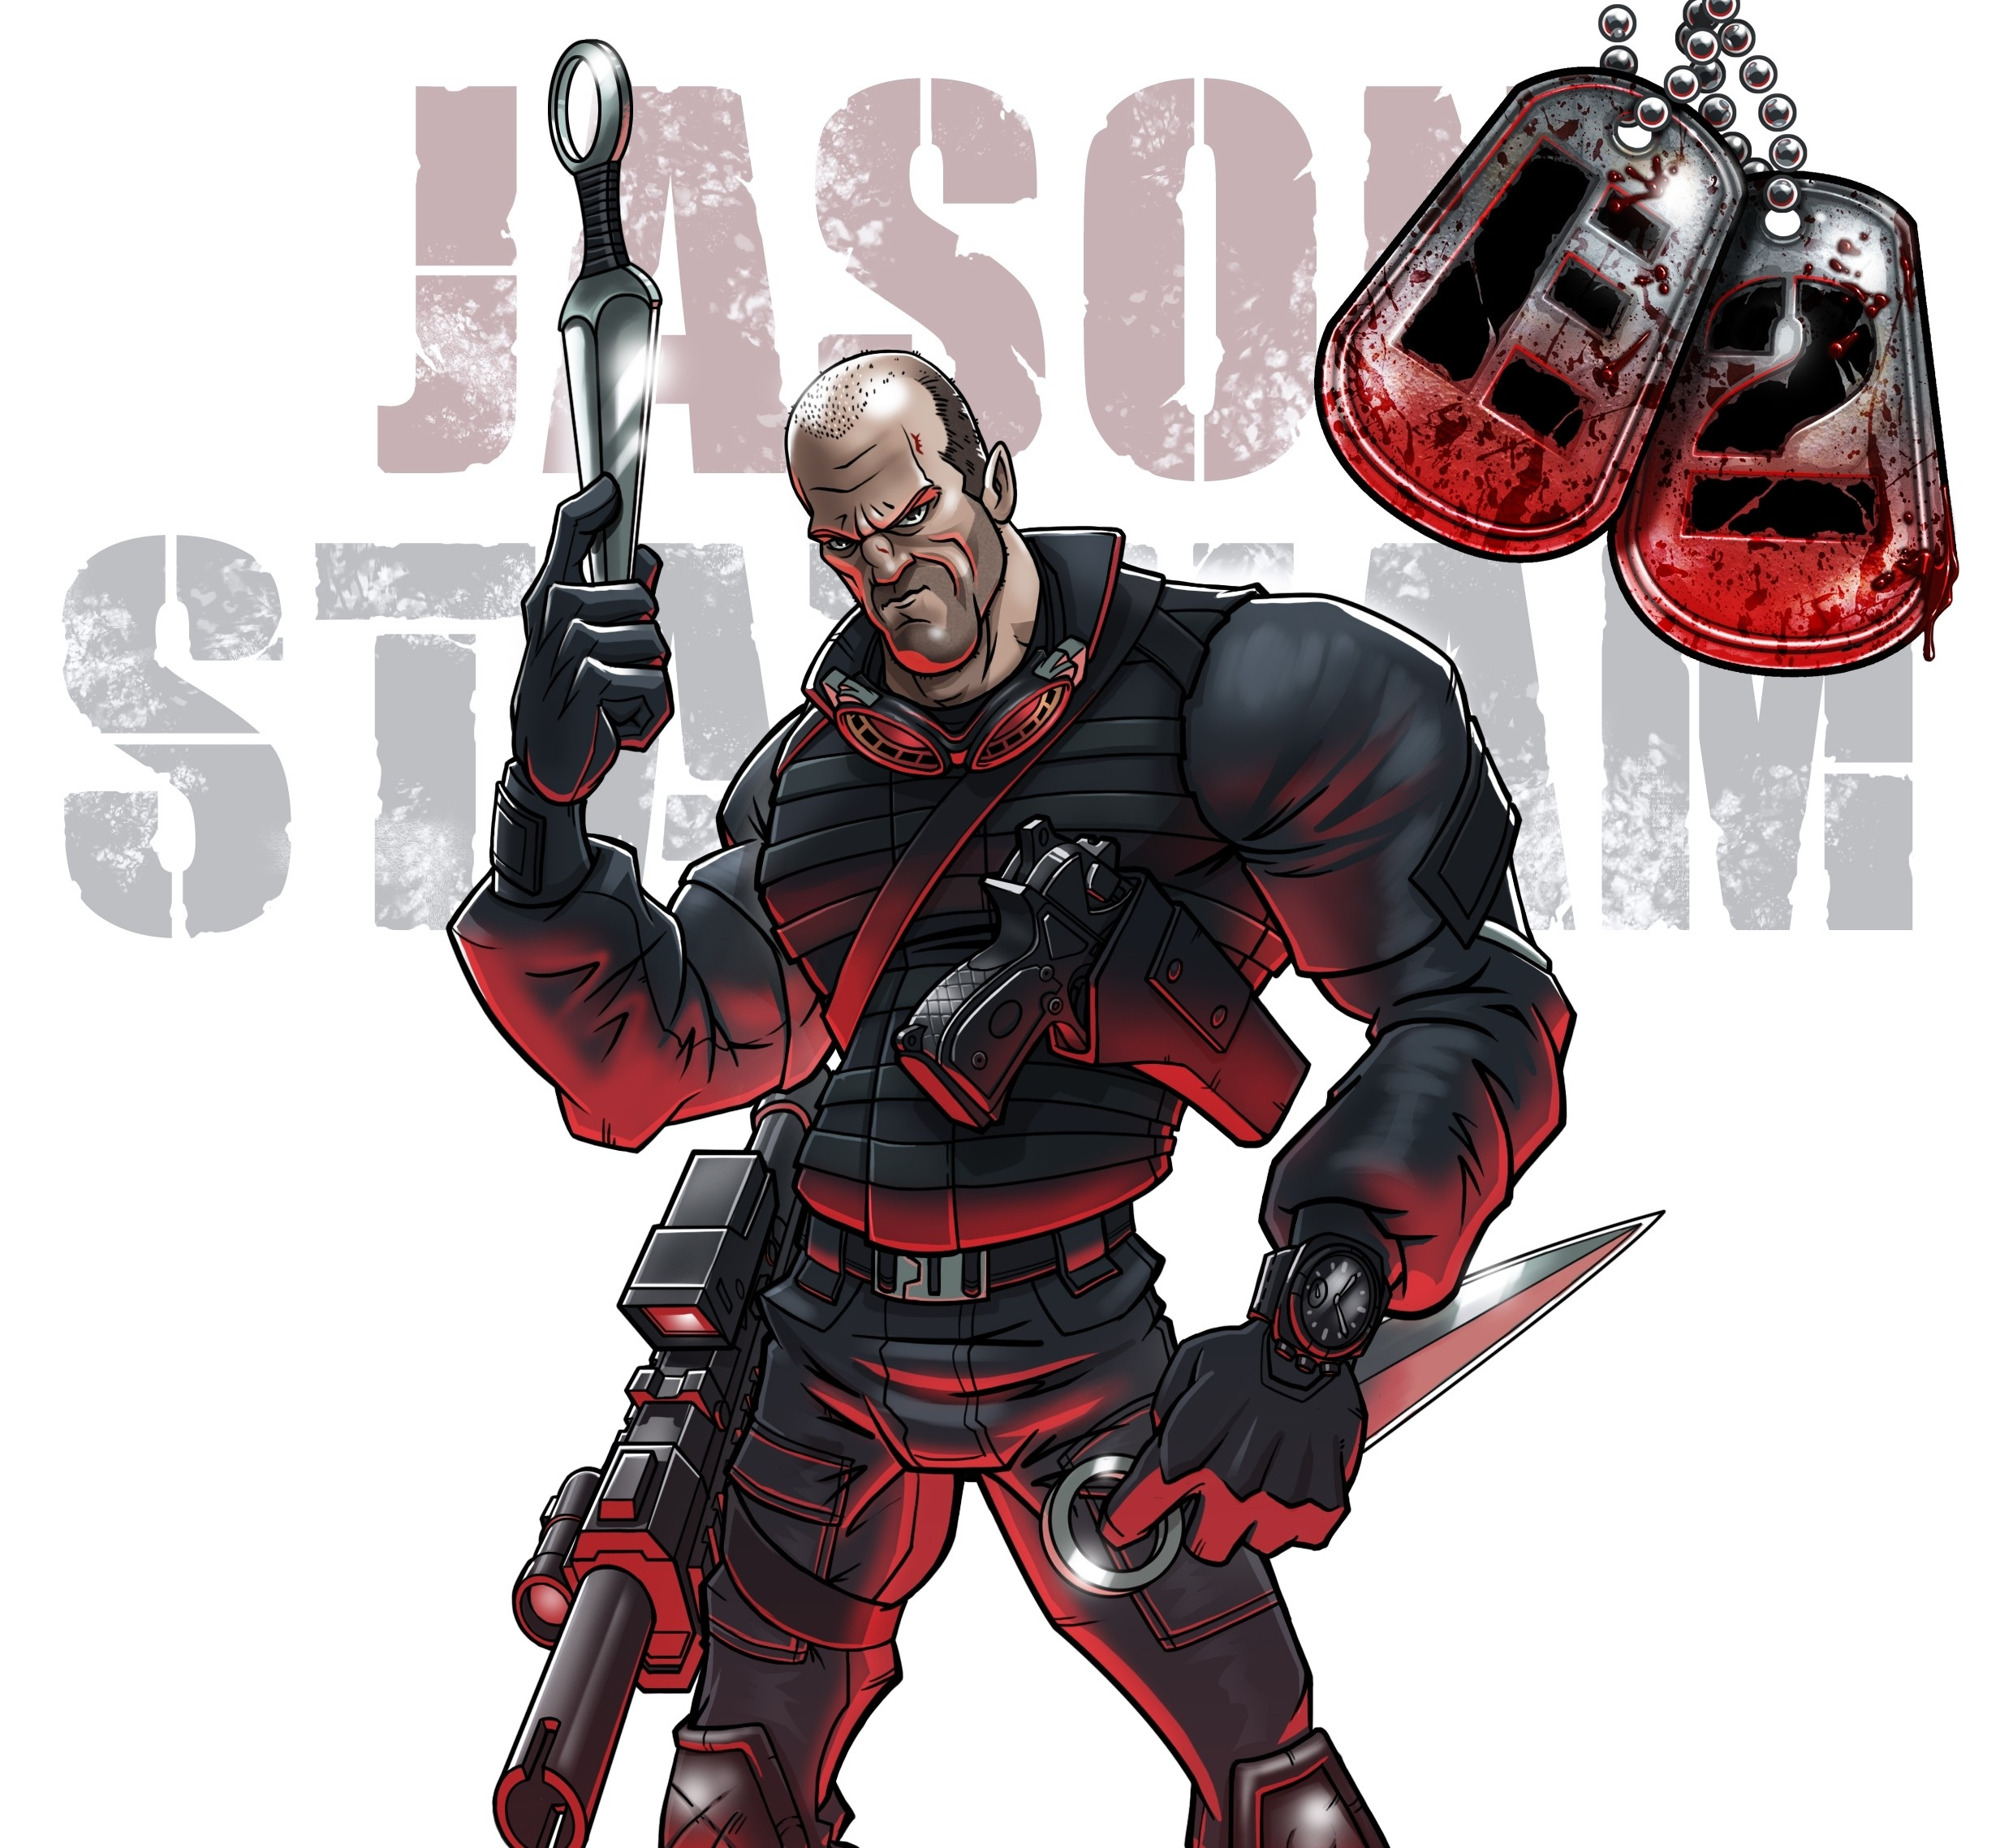 Jason Statham Expendables 3 Wallpaper